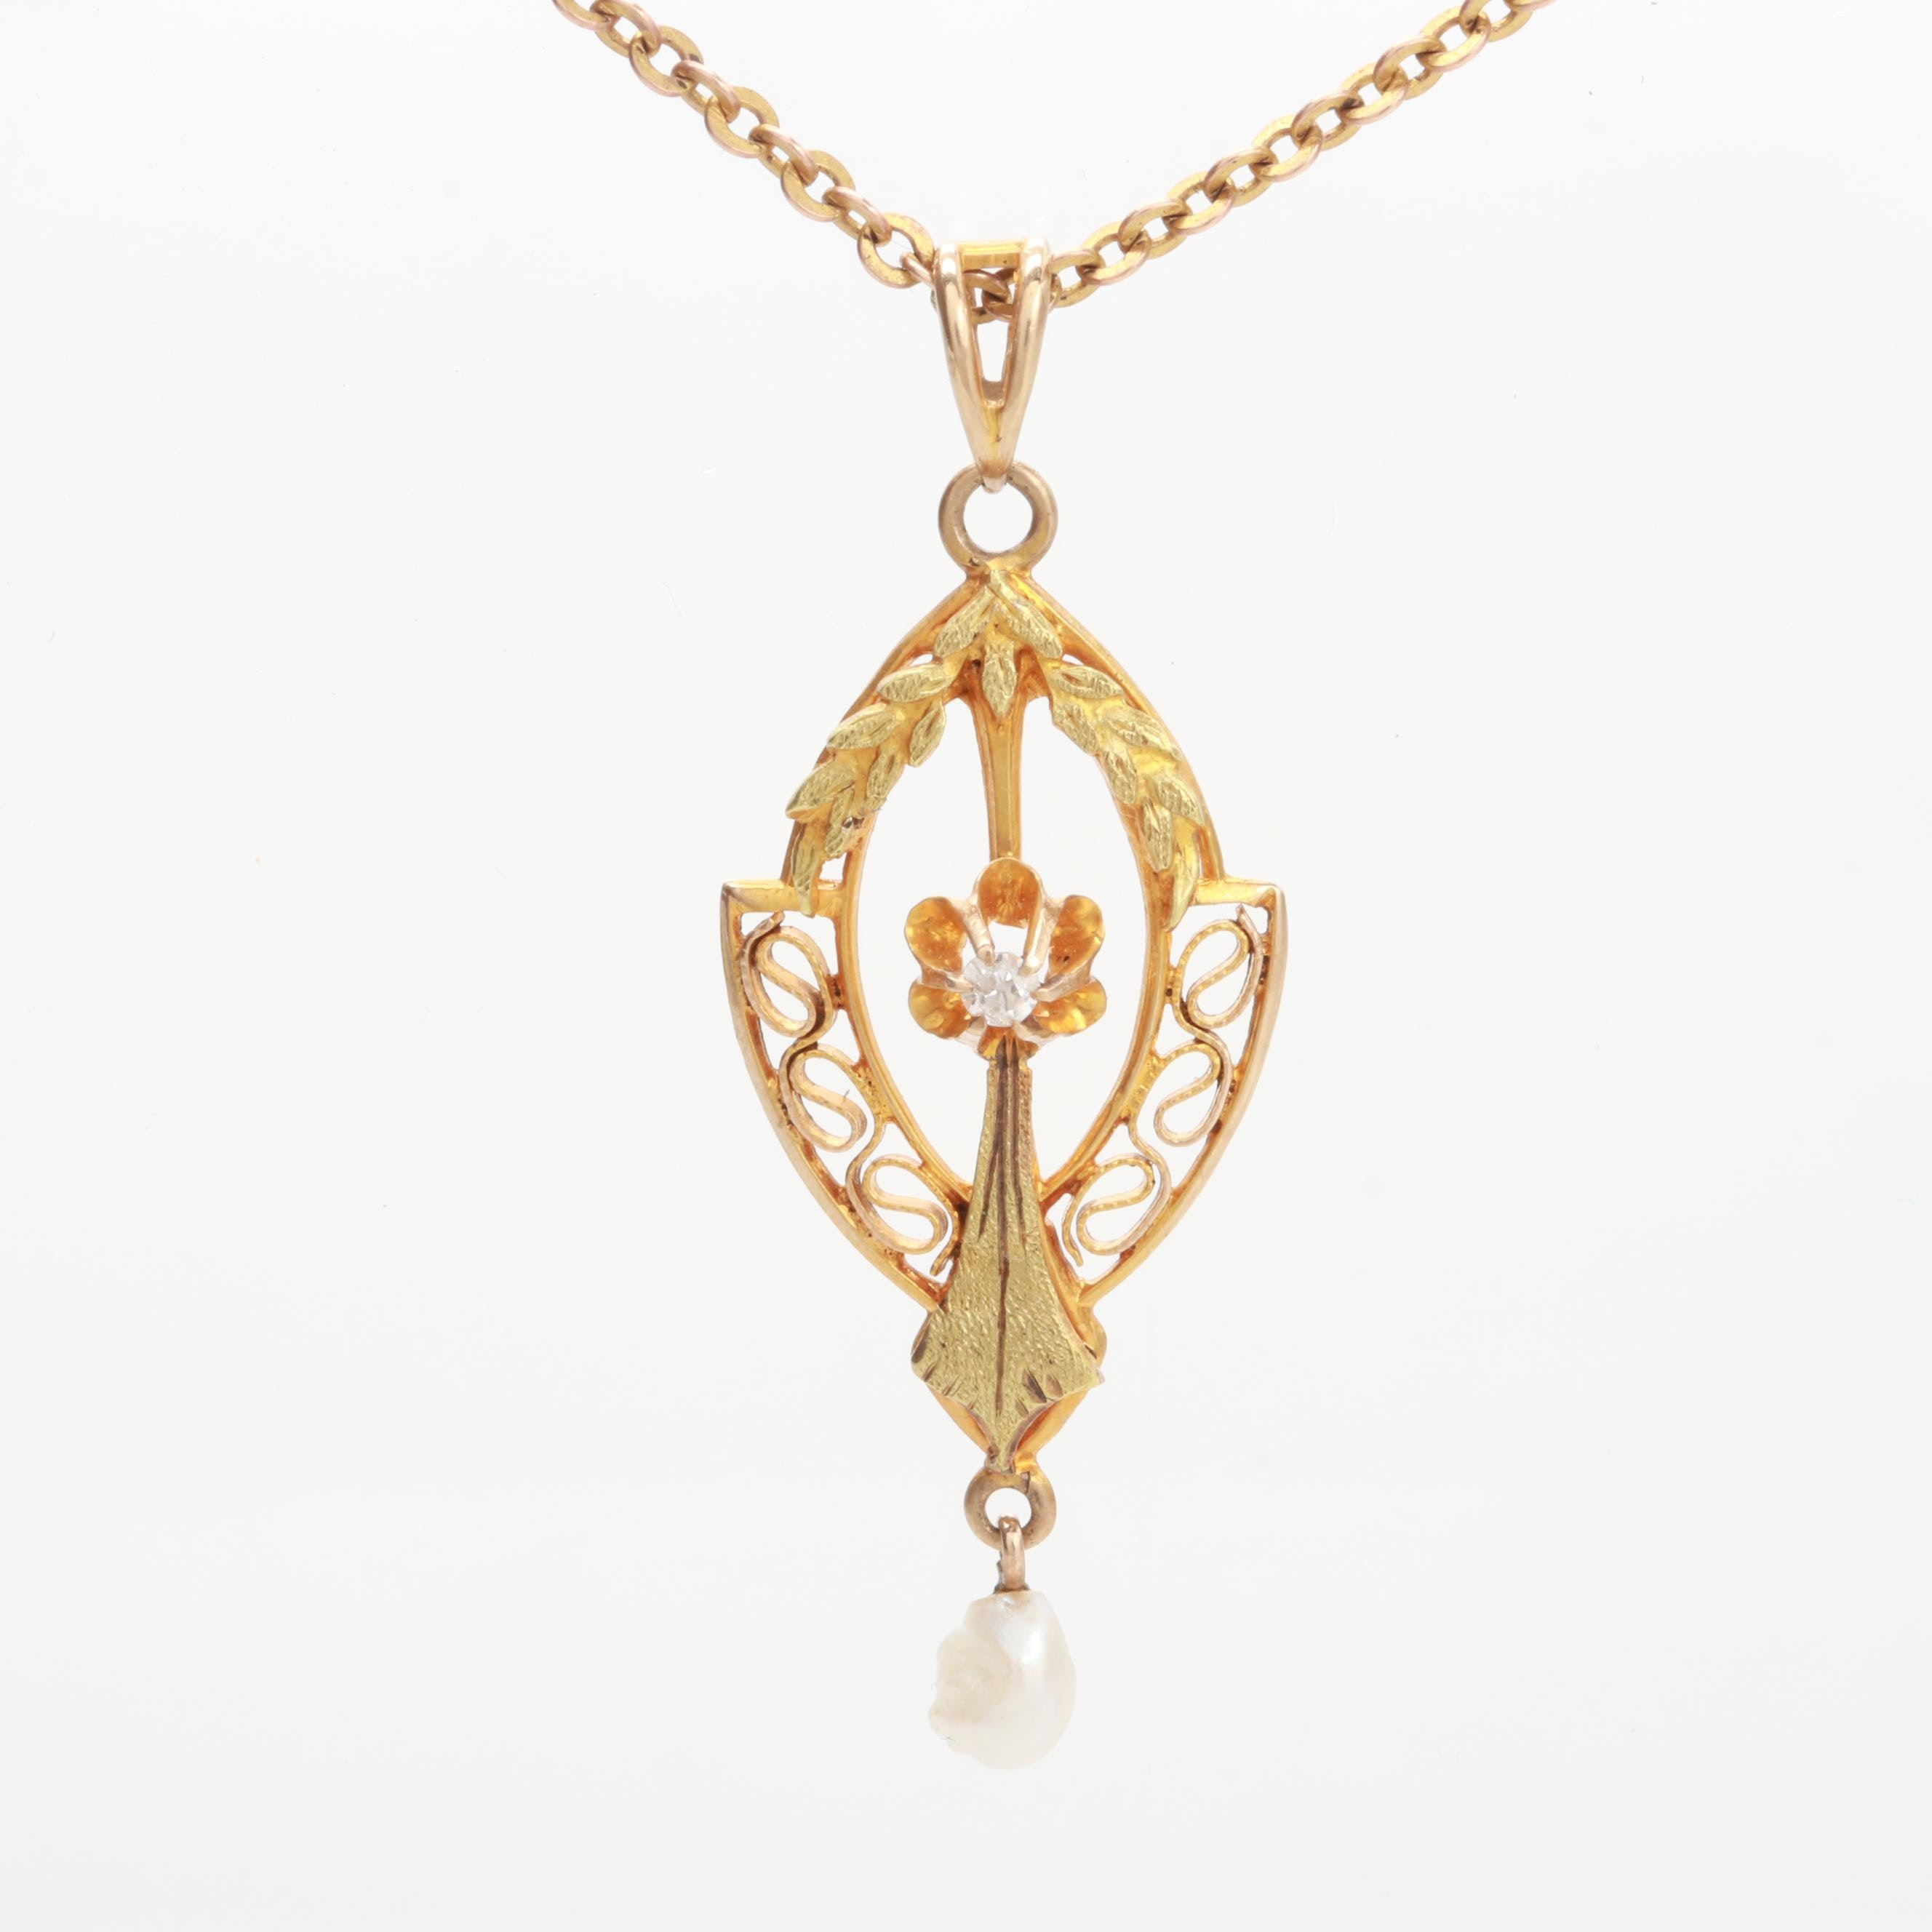 Circa 1910s 10K Yellow Gold Diamond and Seed Pearl Lavalier Pendant Necklace